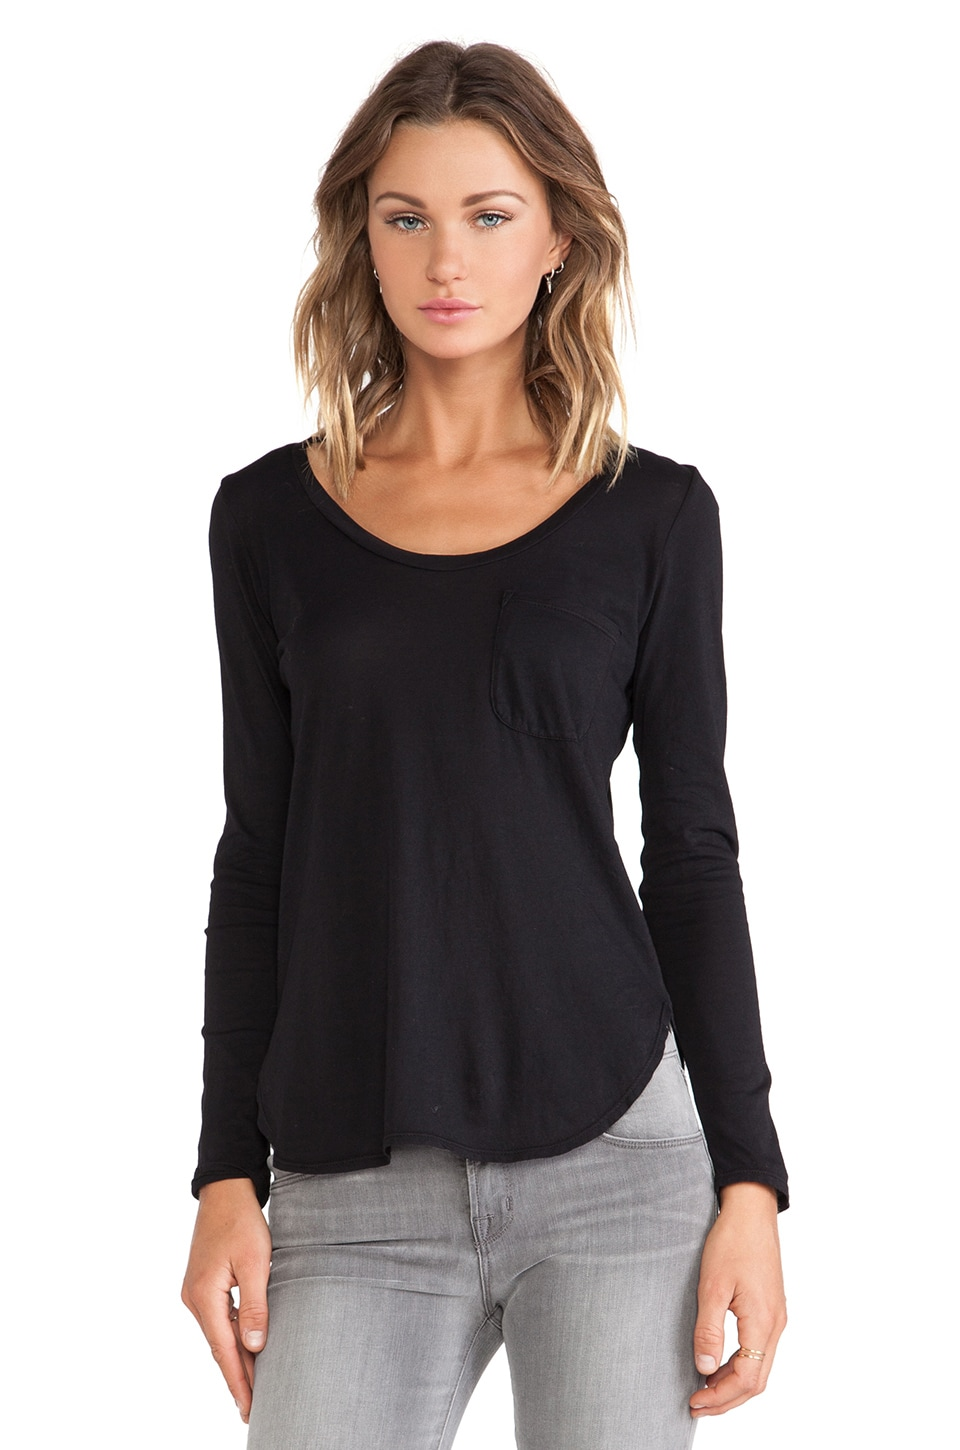 Lanston Pocket Long Sleeve Tunic in Black